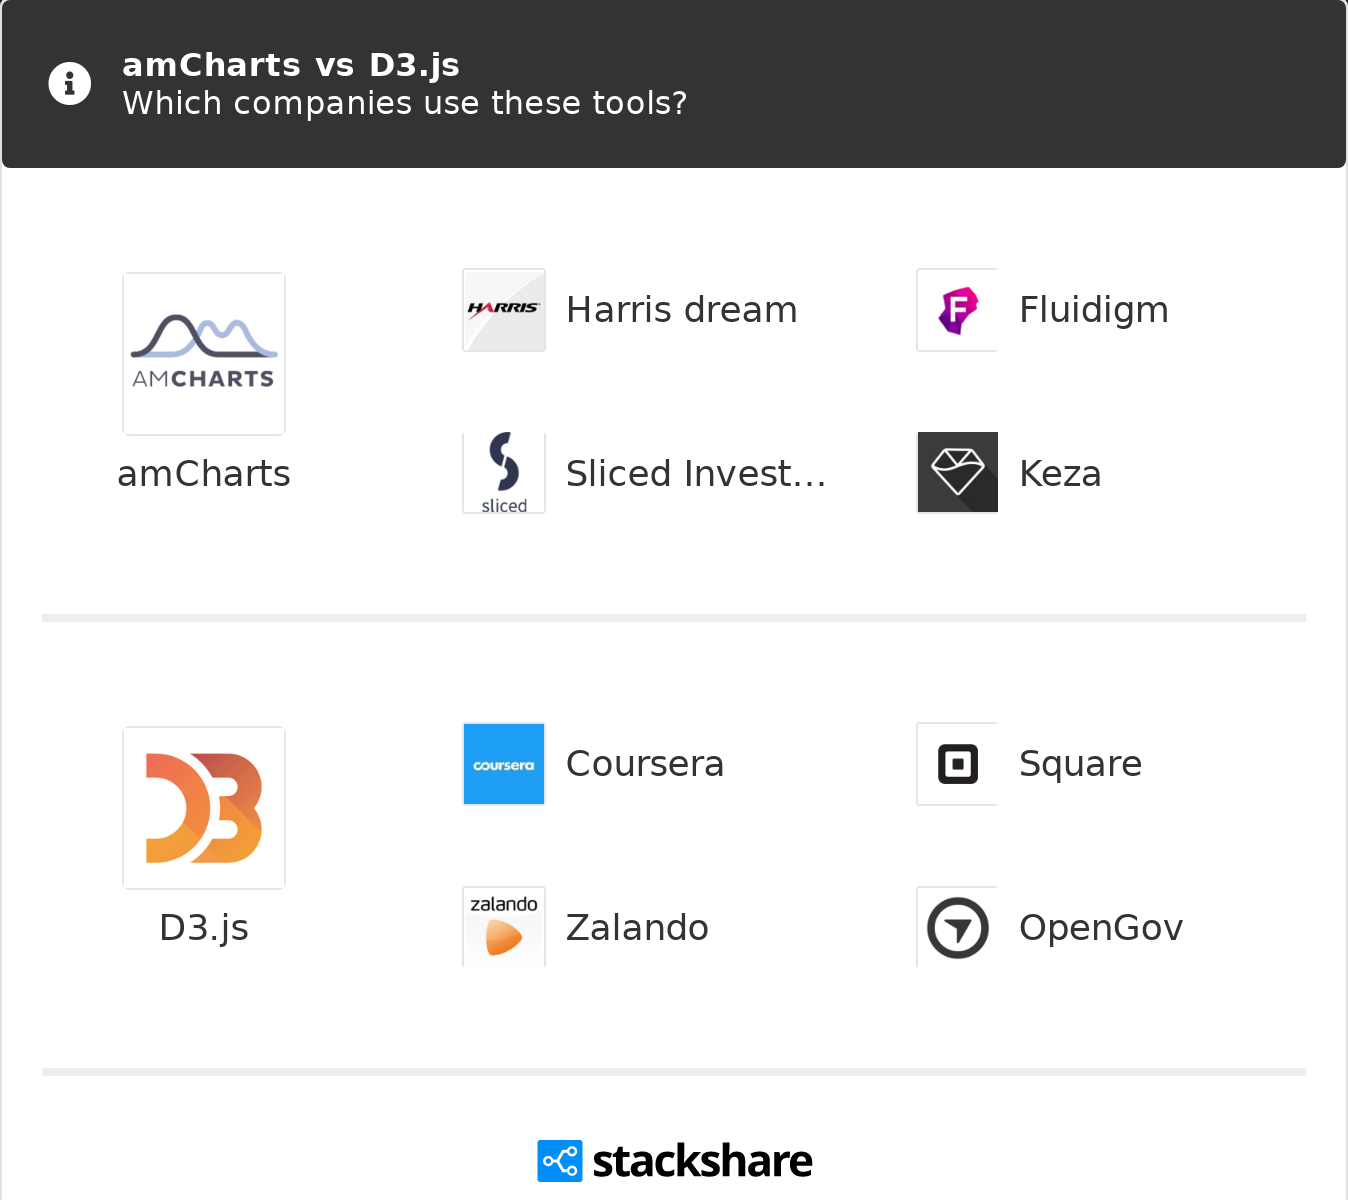 amCharts vs D3 js | What are the differences?